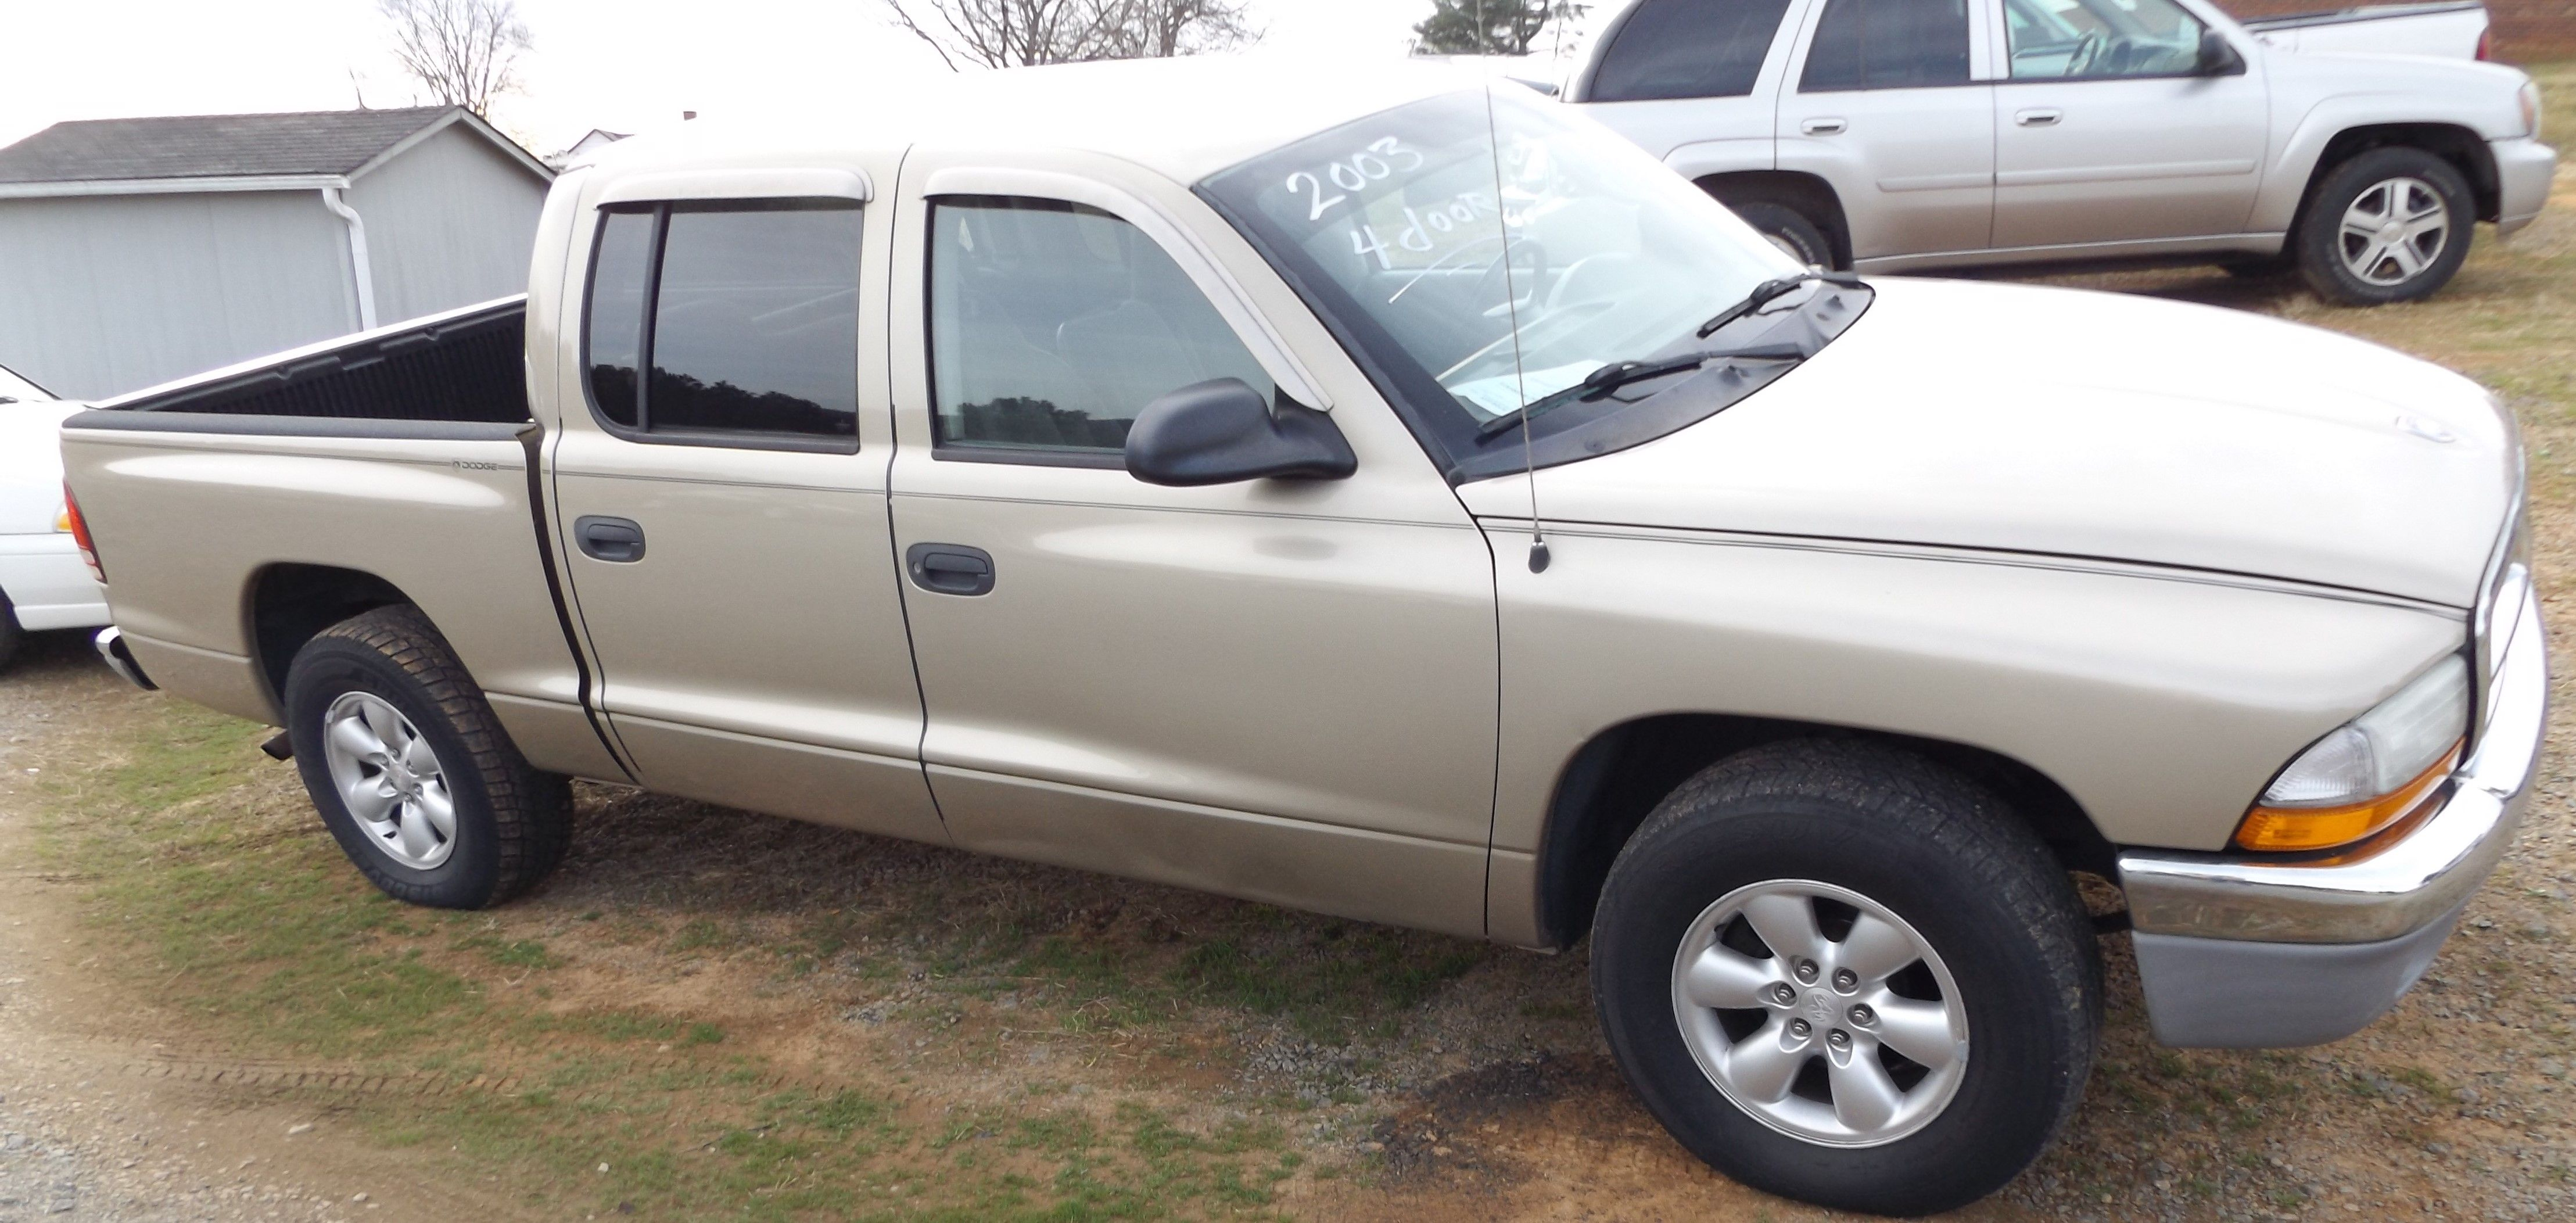 2003 Dodge Dakota SLT, 4-Door